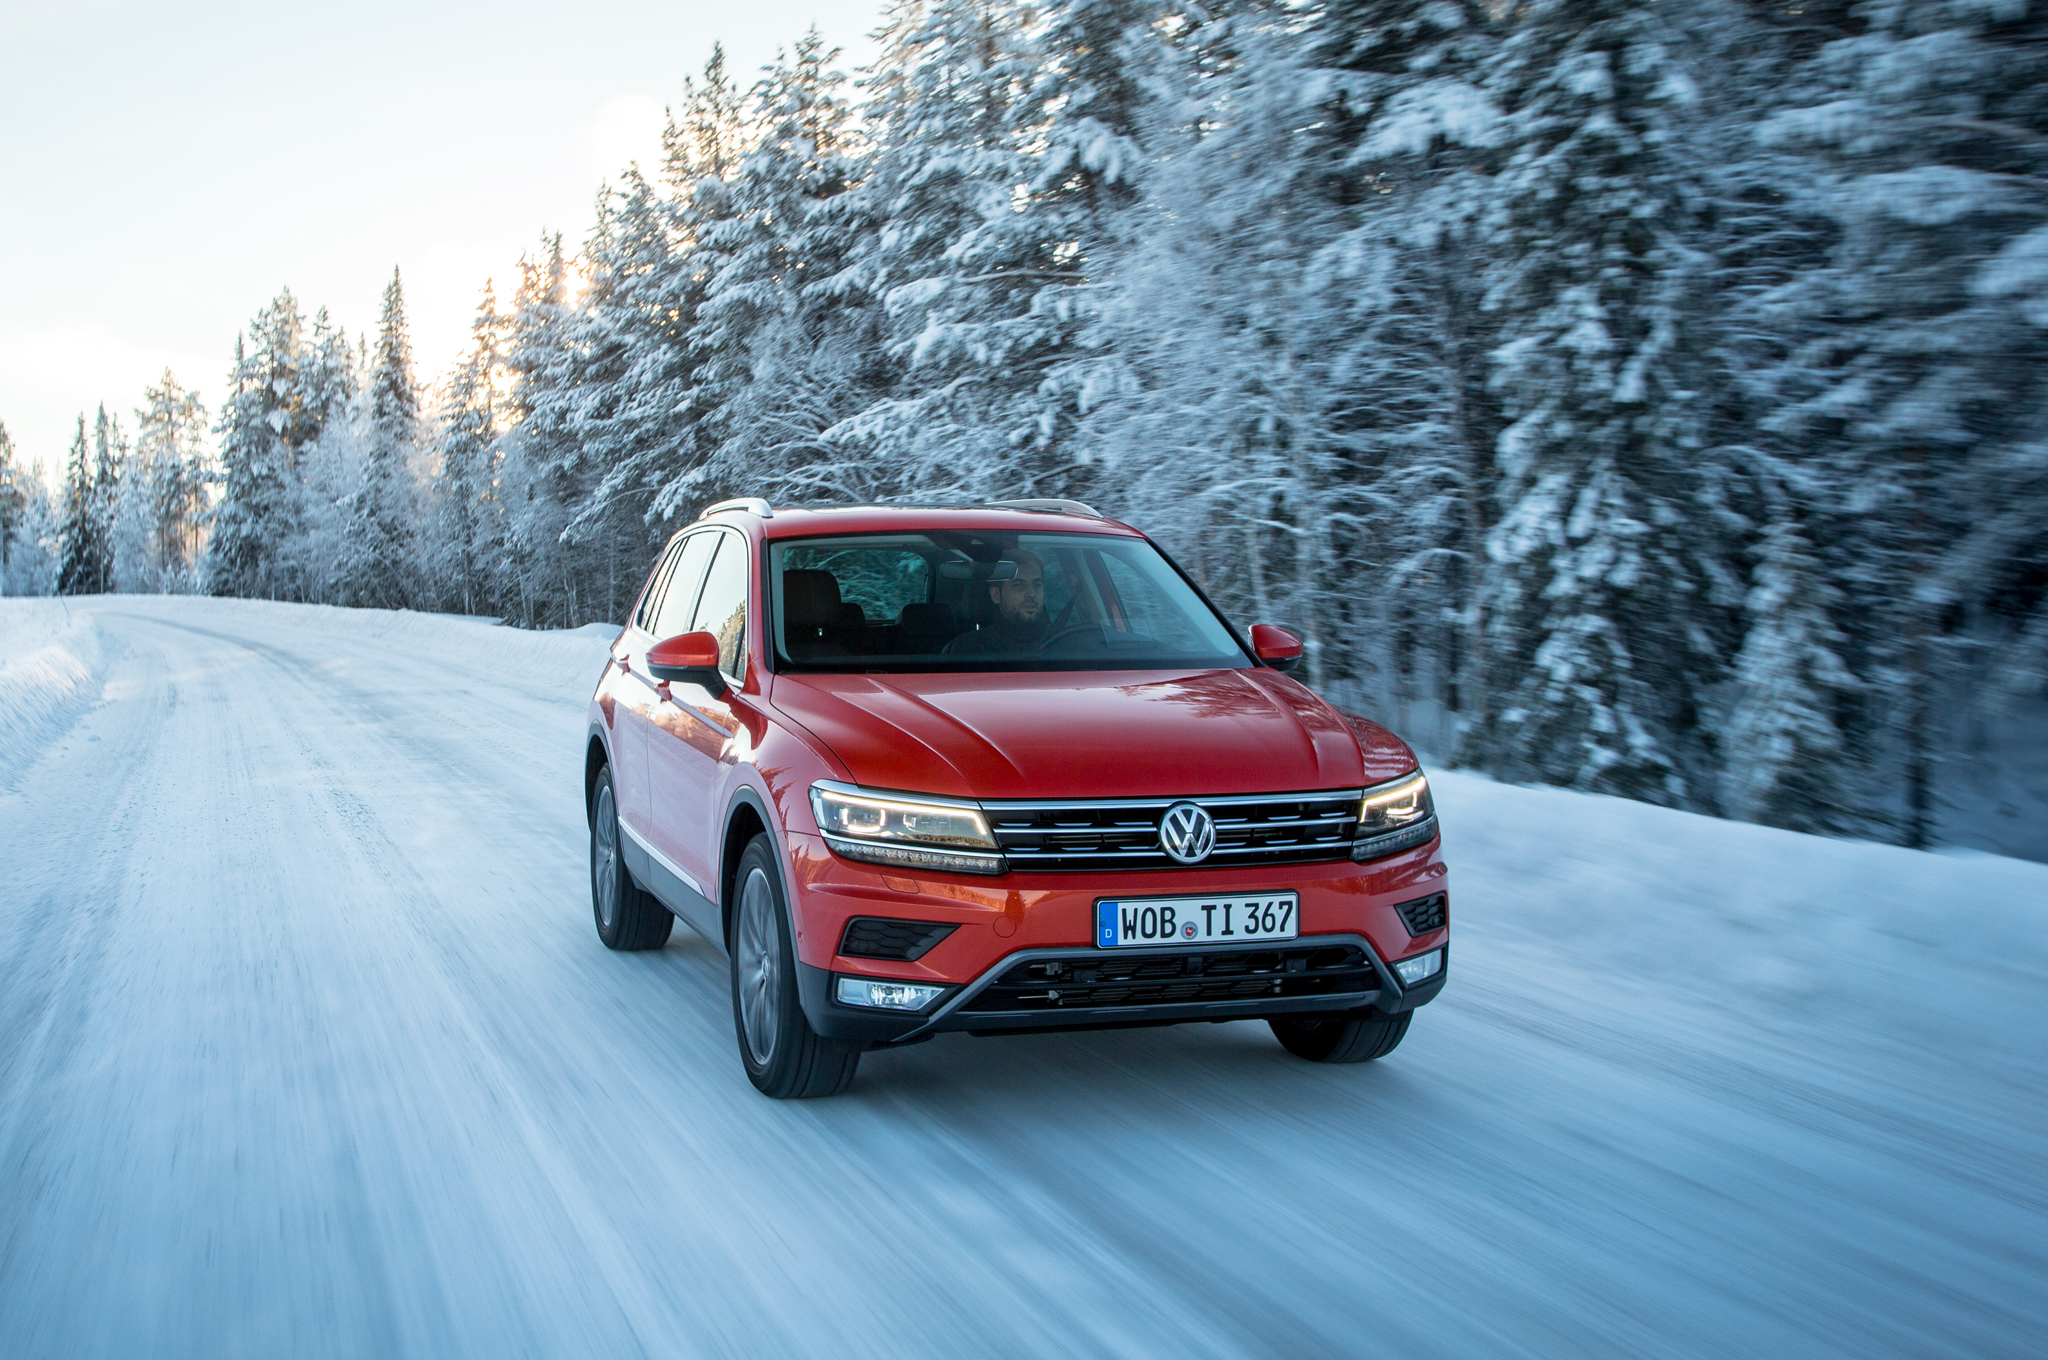 2017 Volkswagen Tiguan Test Drive Front (Photo 12 of 27)